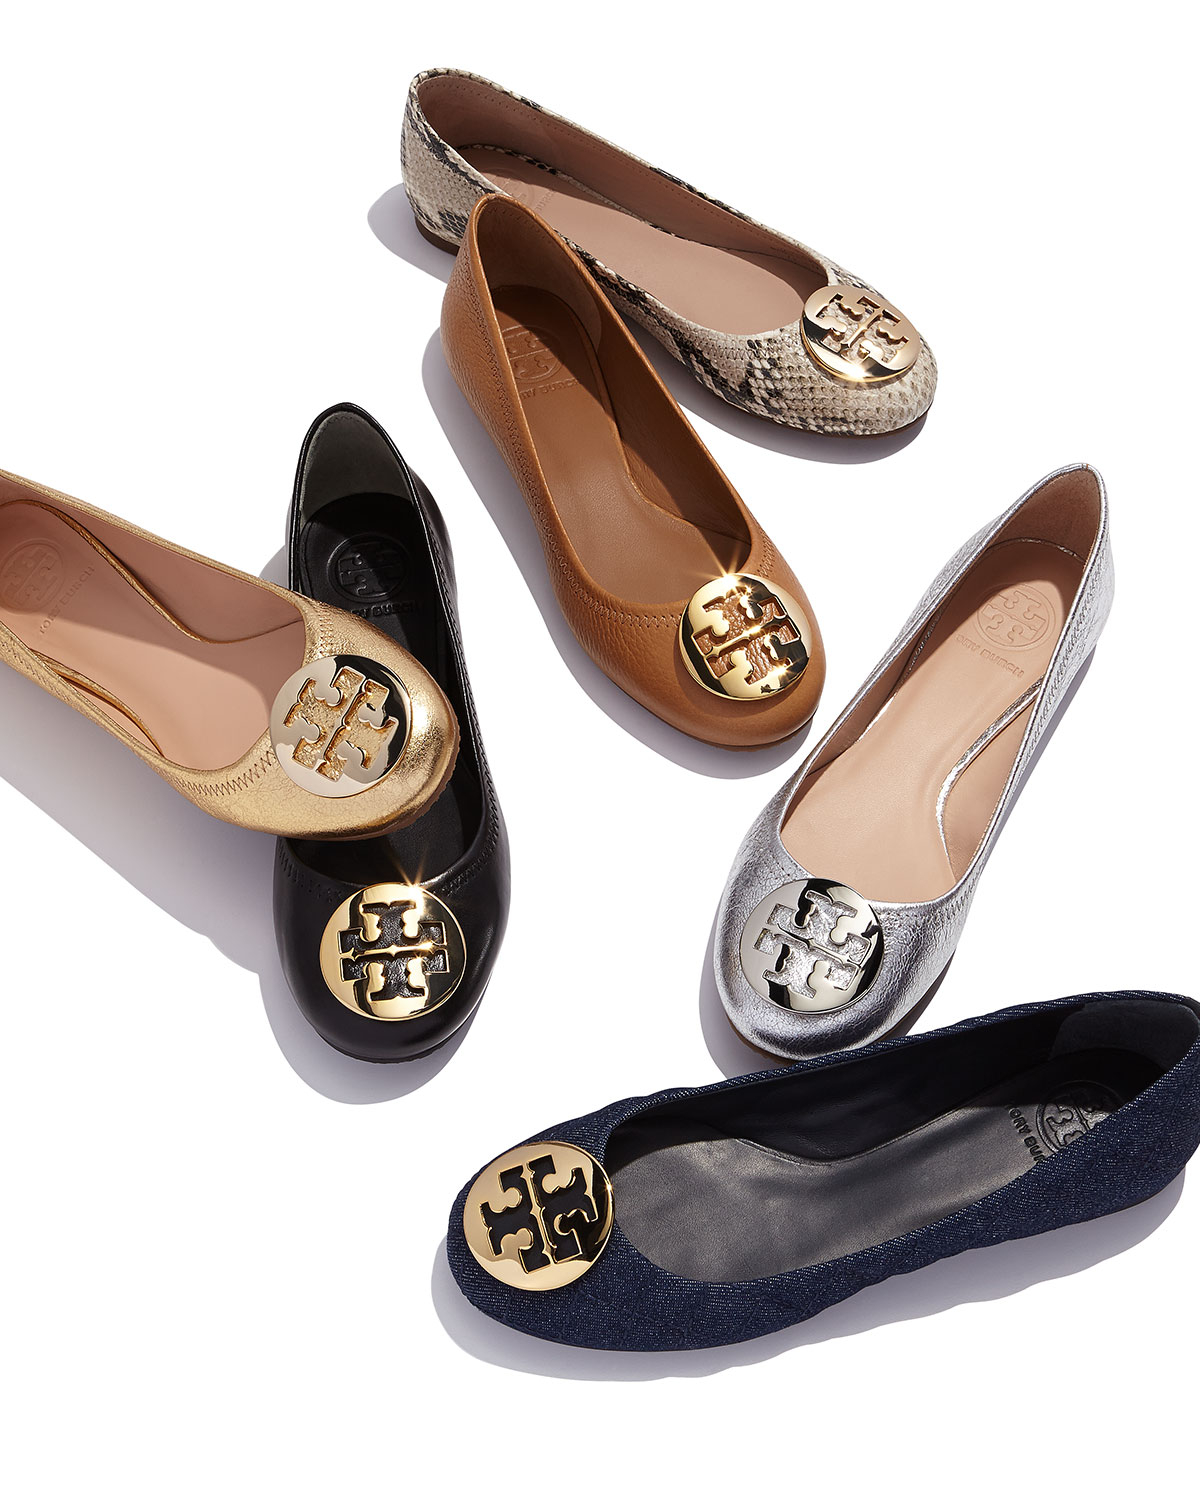 e76dd0581 Lyst - Tory Burch Reva Metallic Ballet Flats in Metallic